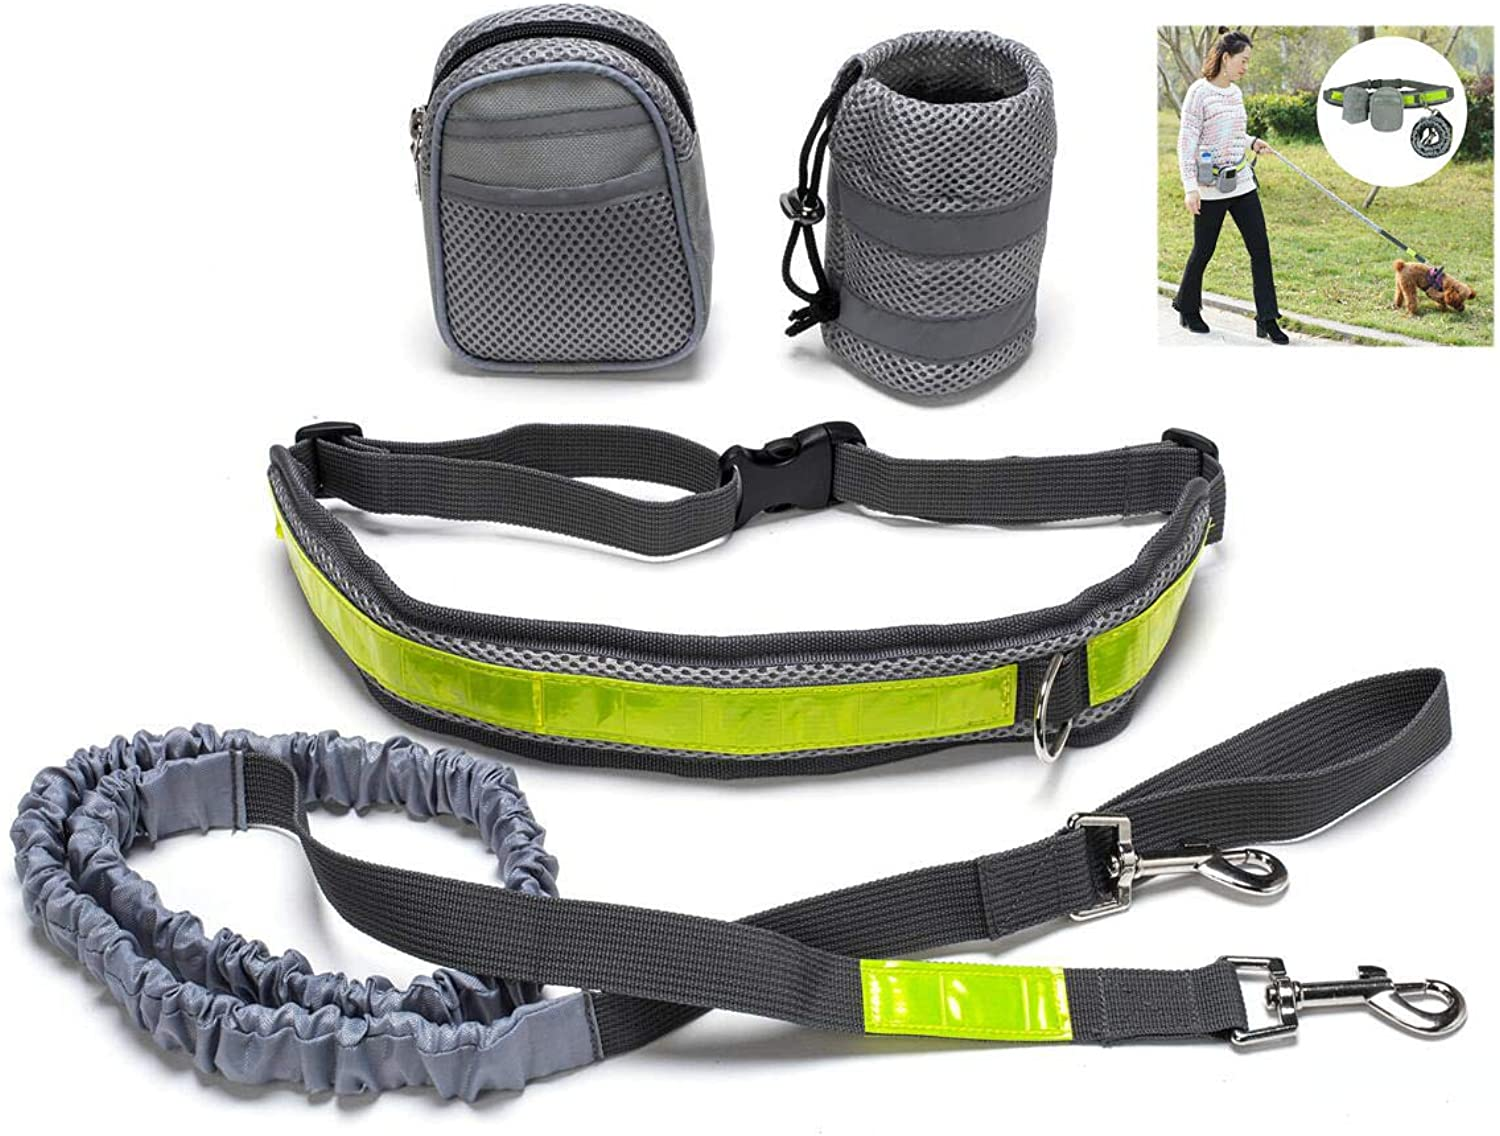 Hands Free Dog Training Kits with Adjustable Waist Belt and Storage Bags, Lightweight and Portable Pouch for Running, Hiking, Walking and Jogging